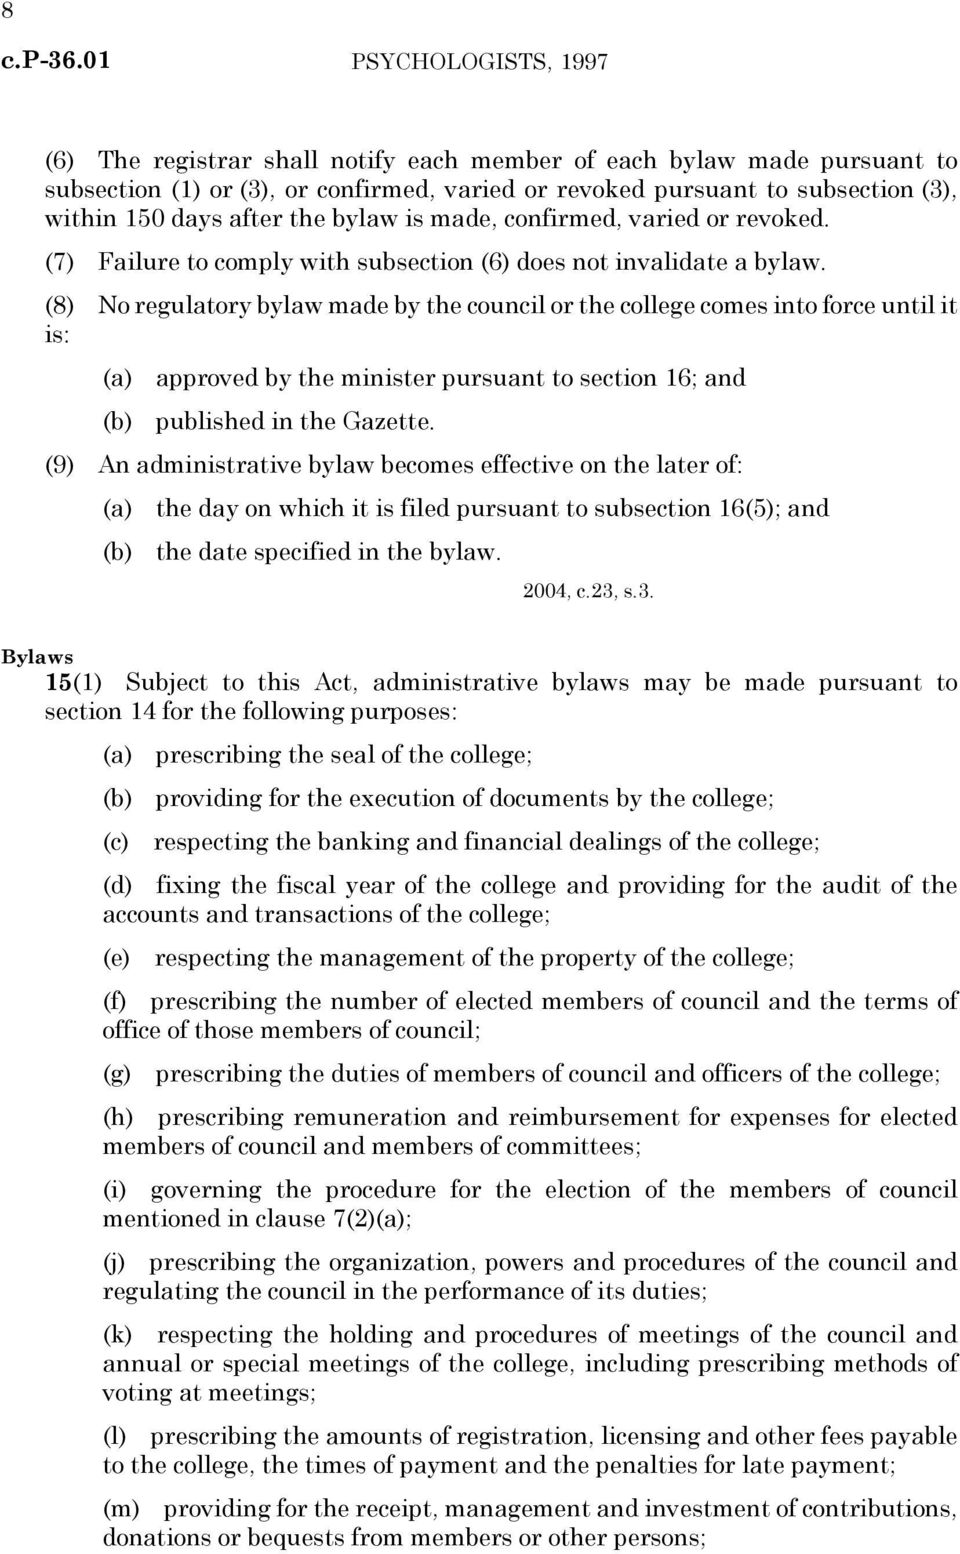 (8) No regulatory bylaw made by the council or the college comes into force until it is: (a) approved by the minister pursuant to section 16; and (b) published in the Gazette.